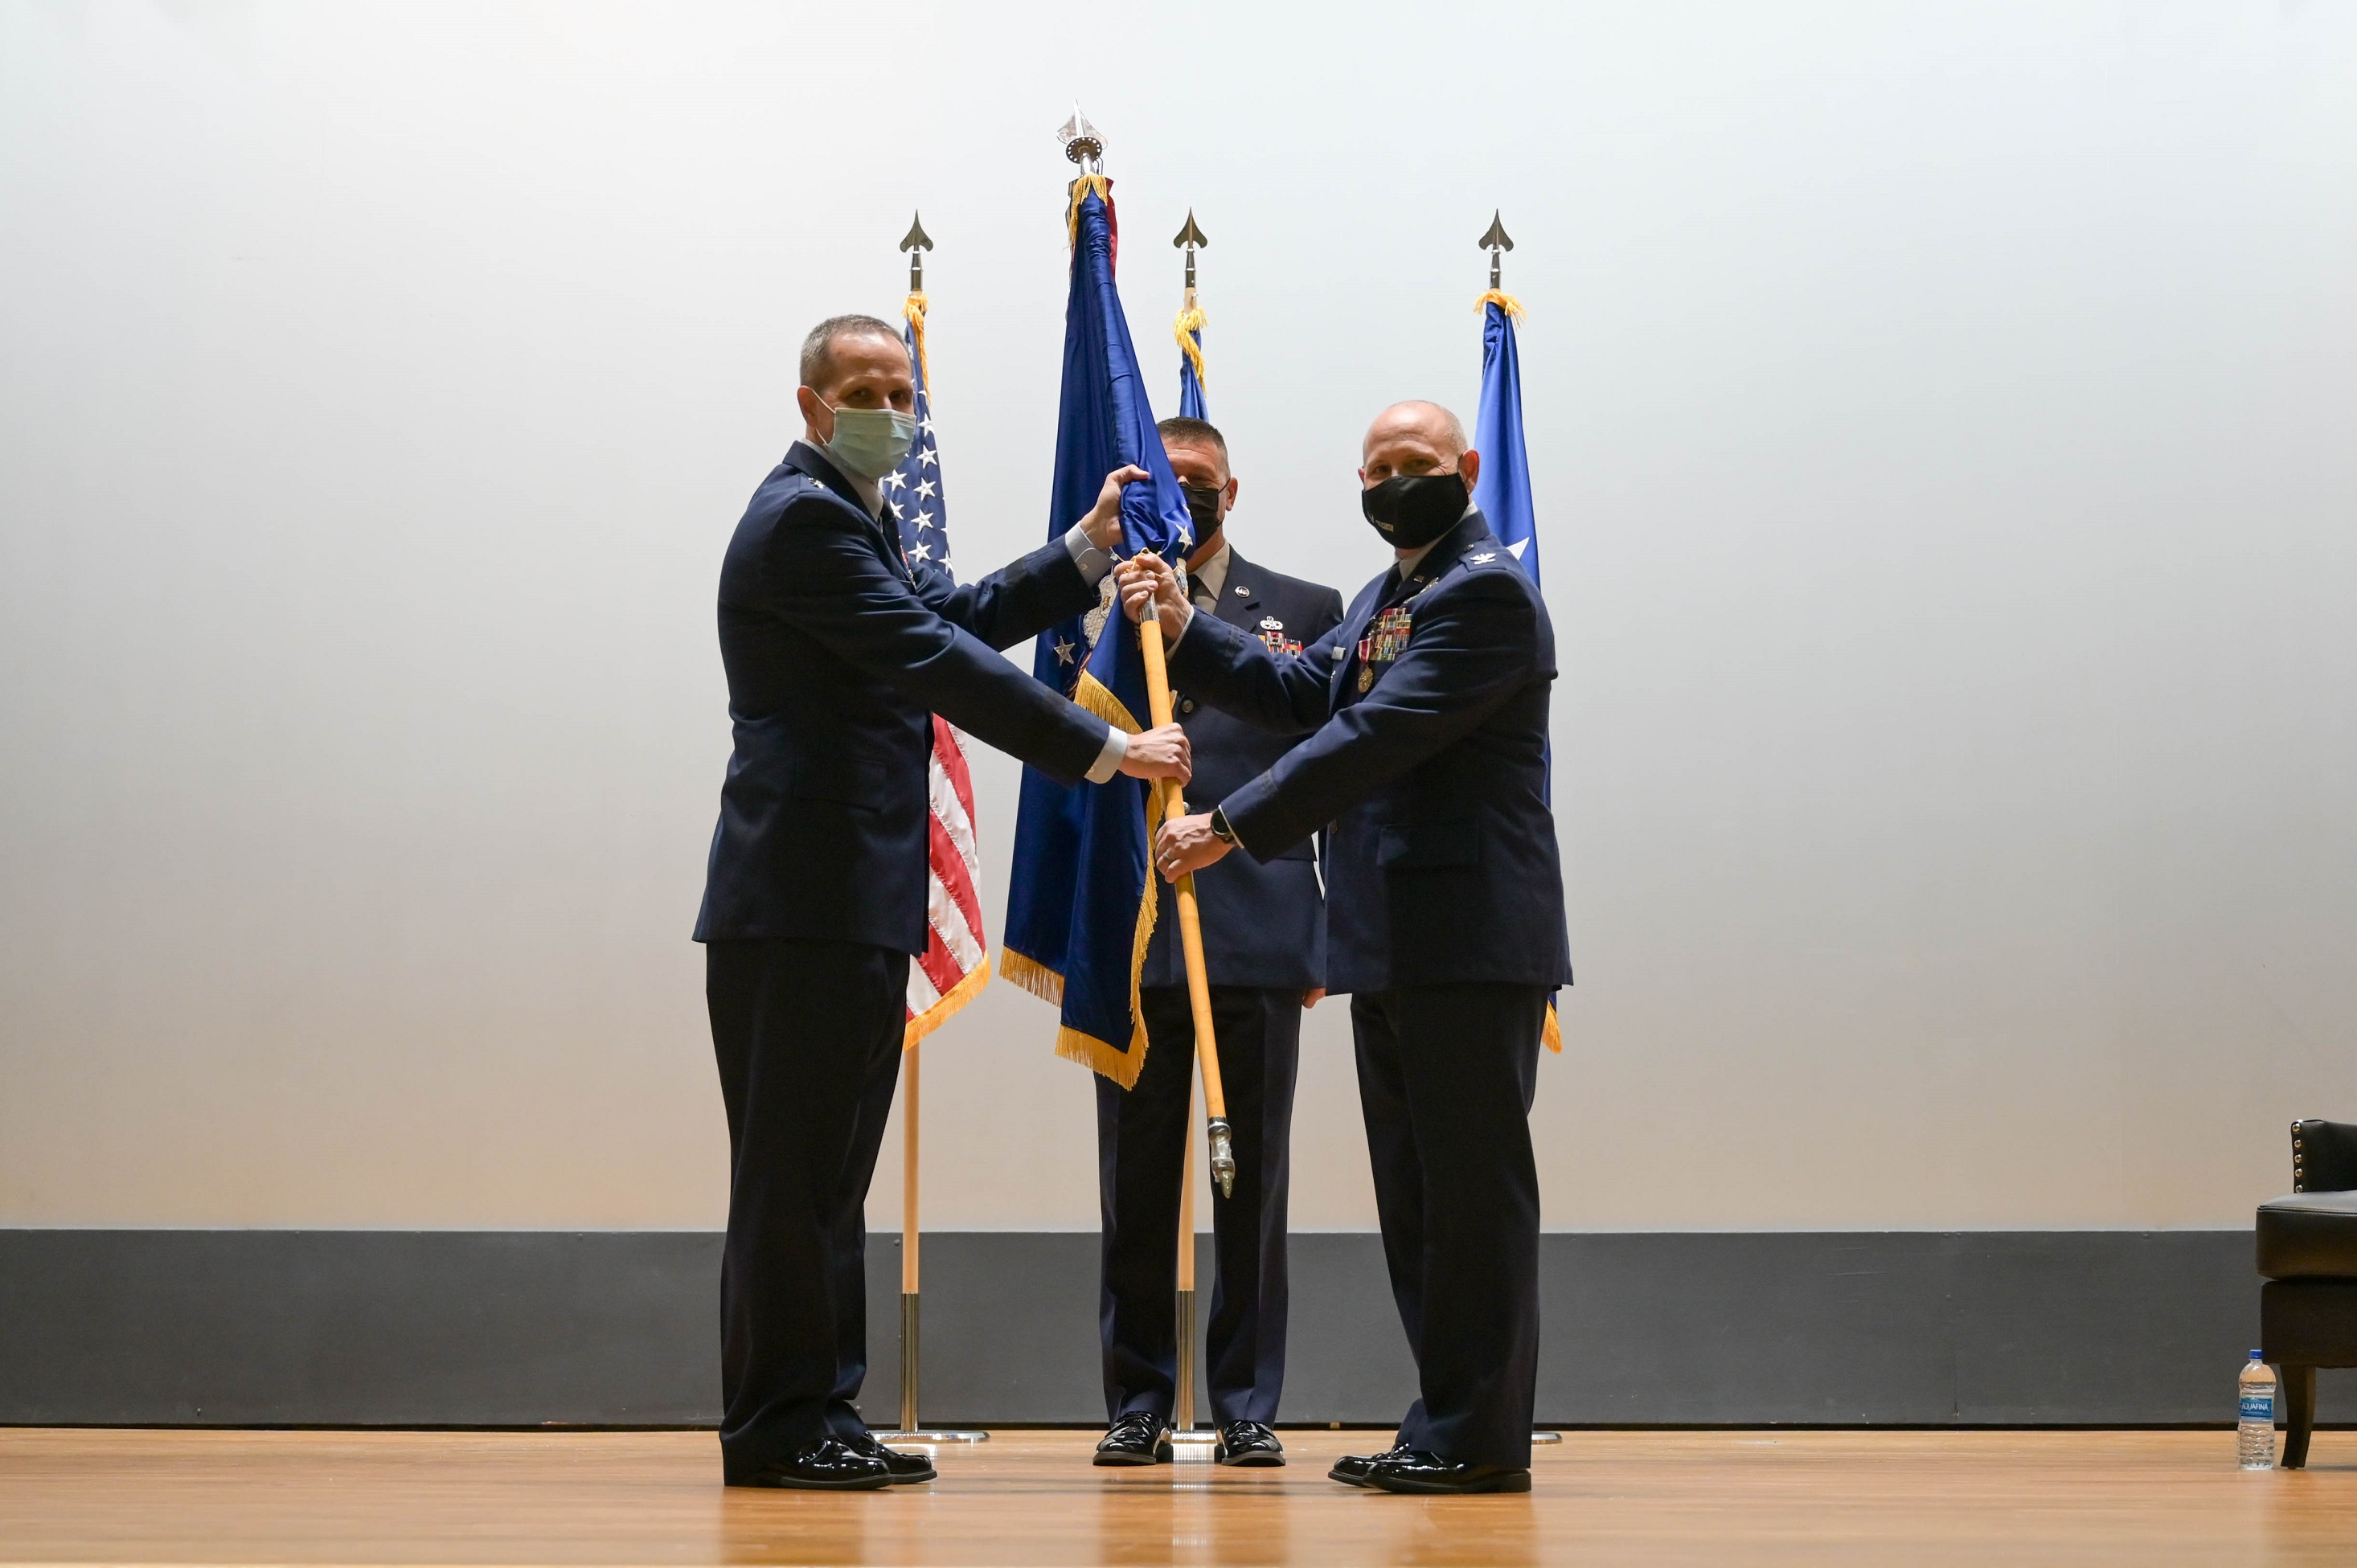 Maj. General Jeffrey T. Pennington, 4th Air Force commander, passes the guidon to Col. Kurt A. Matthews as he takes command of the 927th Air Refueling Wing during a ceremony Sept. 11, 2021 in the base theater at MacDill Air Force Base, Florida.